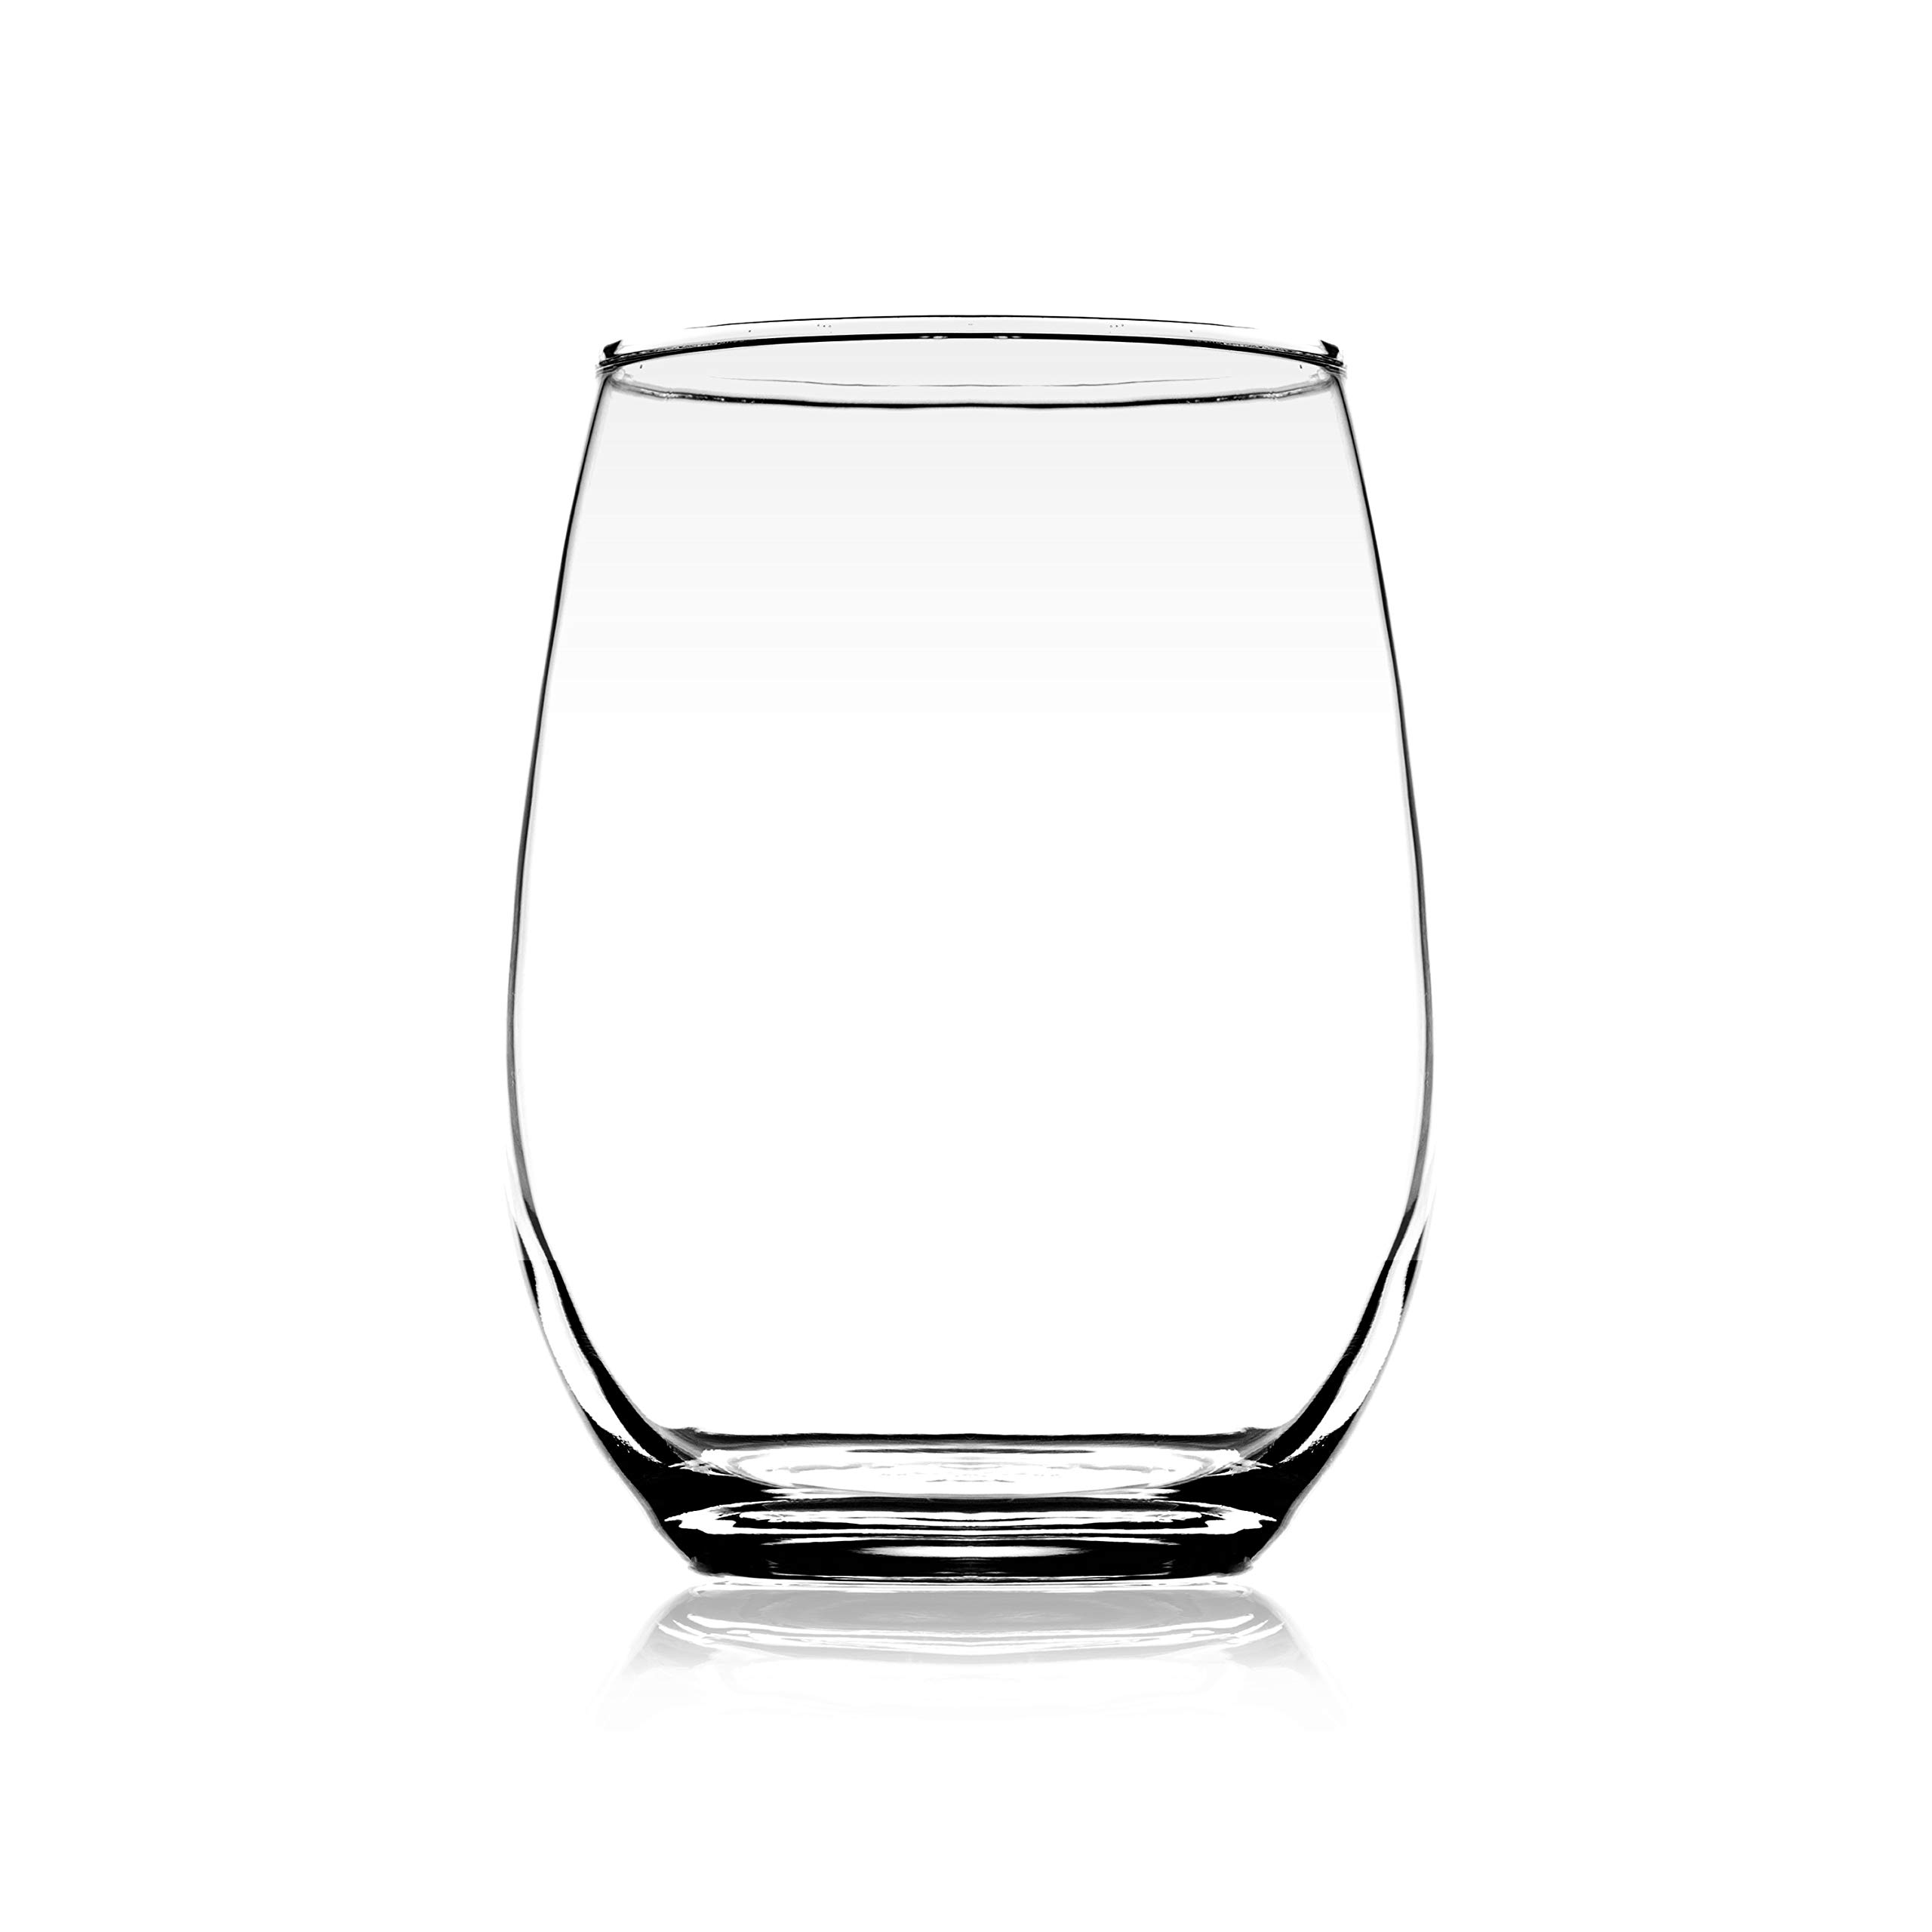 Element Drinkware Stemless Wine Glass 20oz Great For White Or Red Wine - Large Size Durable Chip Resistant Rim Wine Tumbler Premium Drinking Cups Great Gift for Wine Lovers or Crafters - Bulk Set of 6 by Element Drinkware (Image #7)